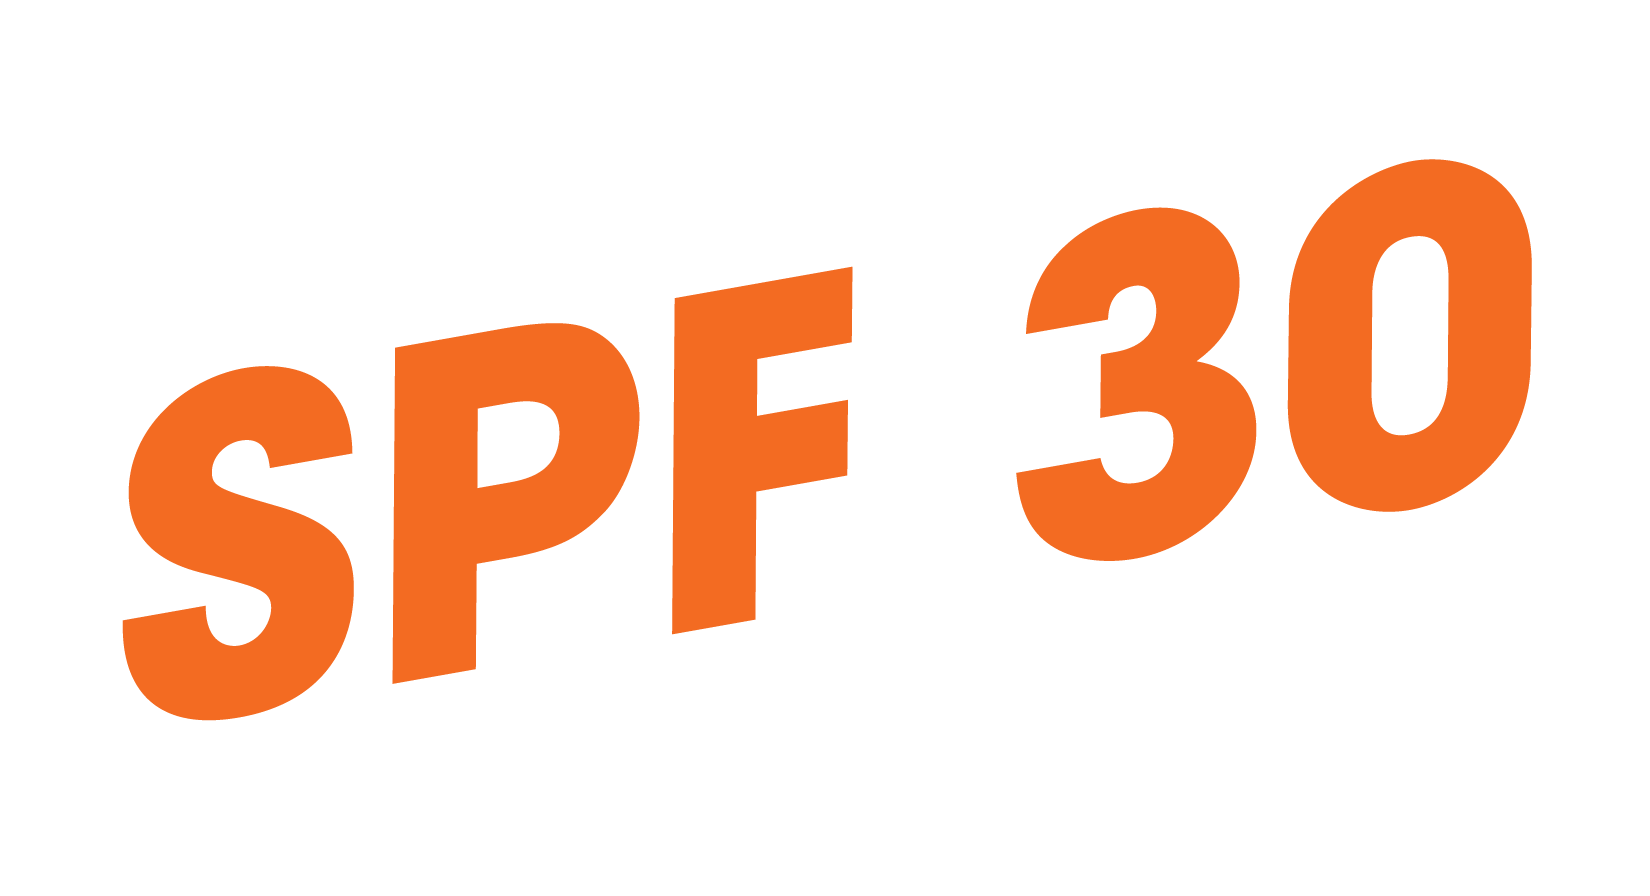 06-logo-landscape-orange-01.png